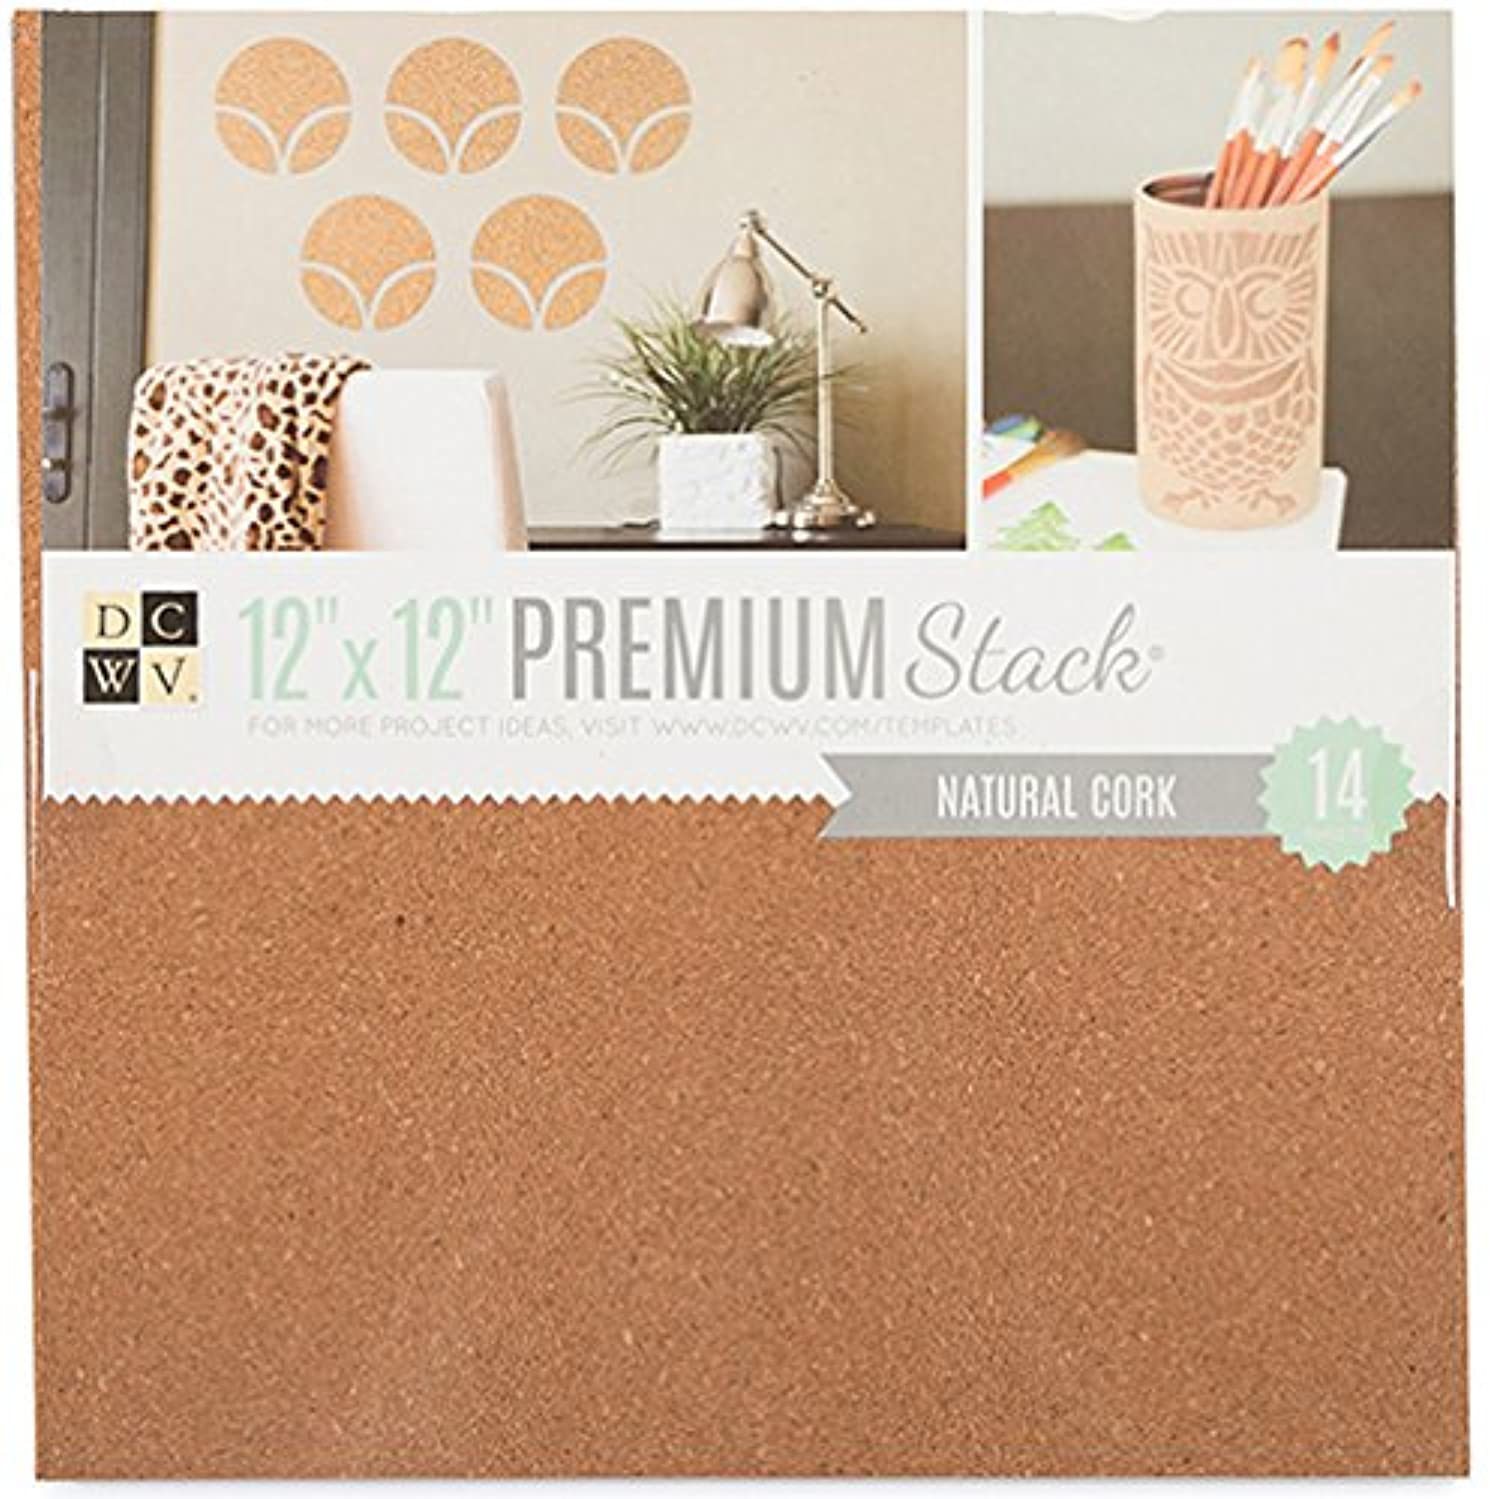 American Crafts 12 x 12 Inch Natural Cork Premium 14 Sheets Die Cuts with a View Stacks